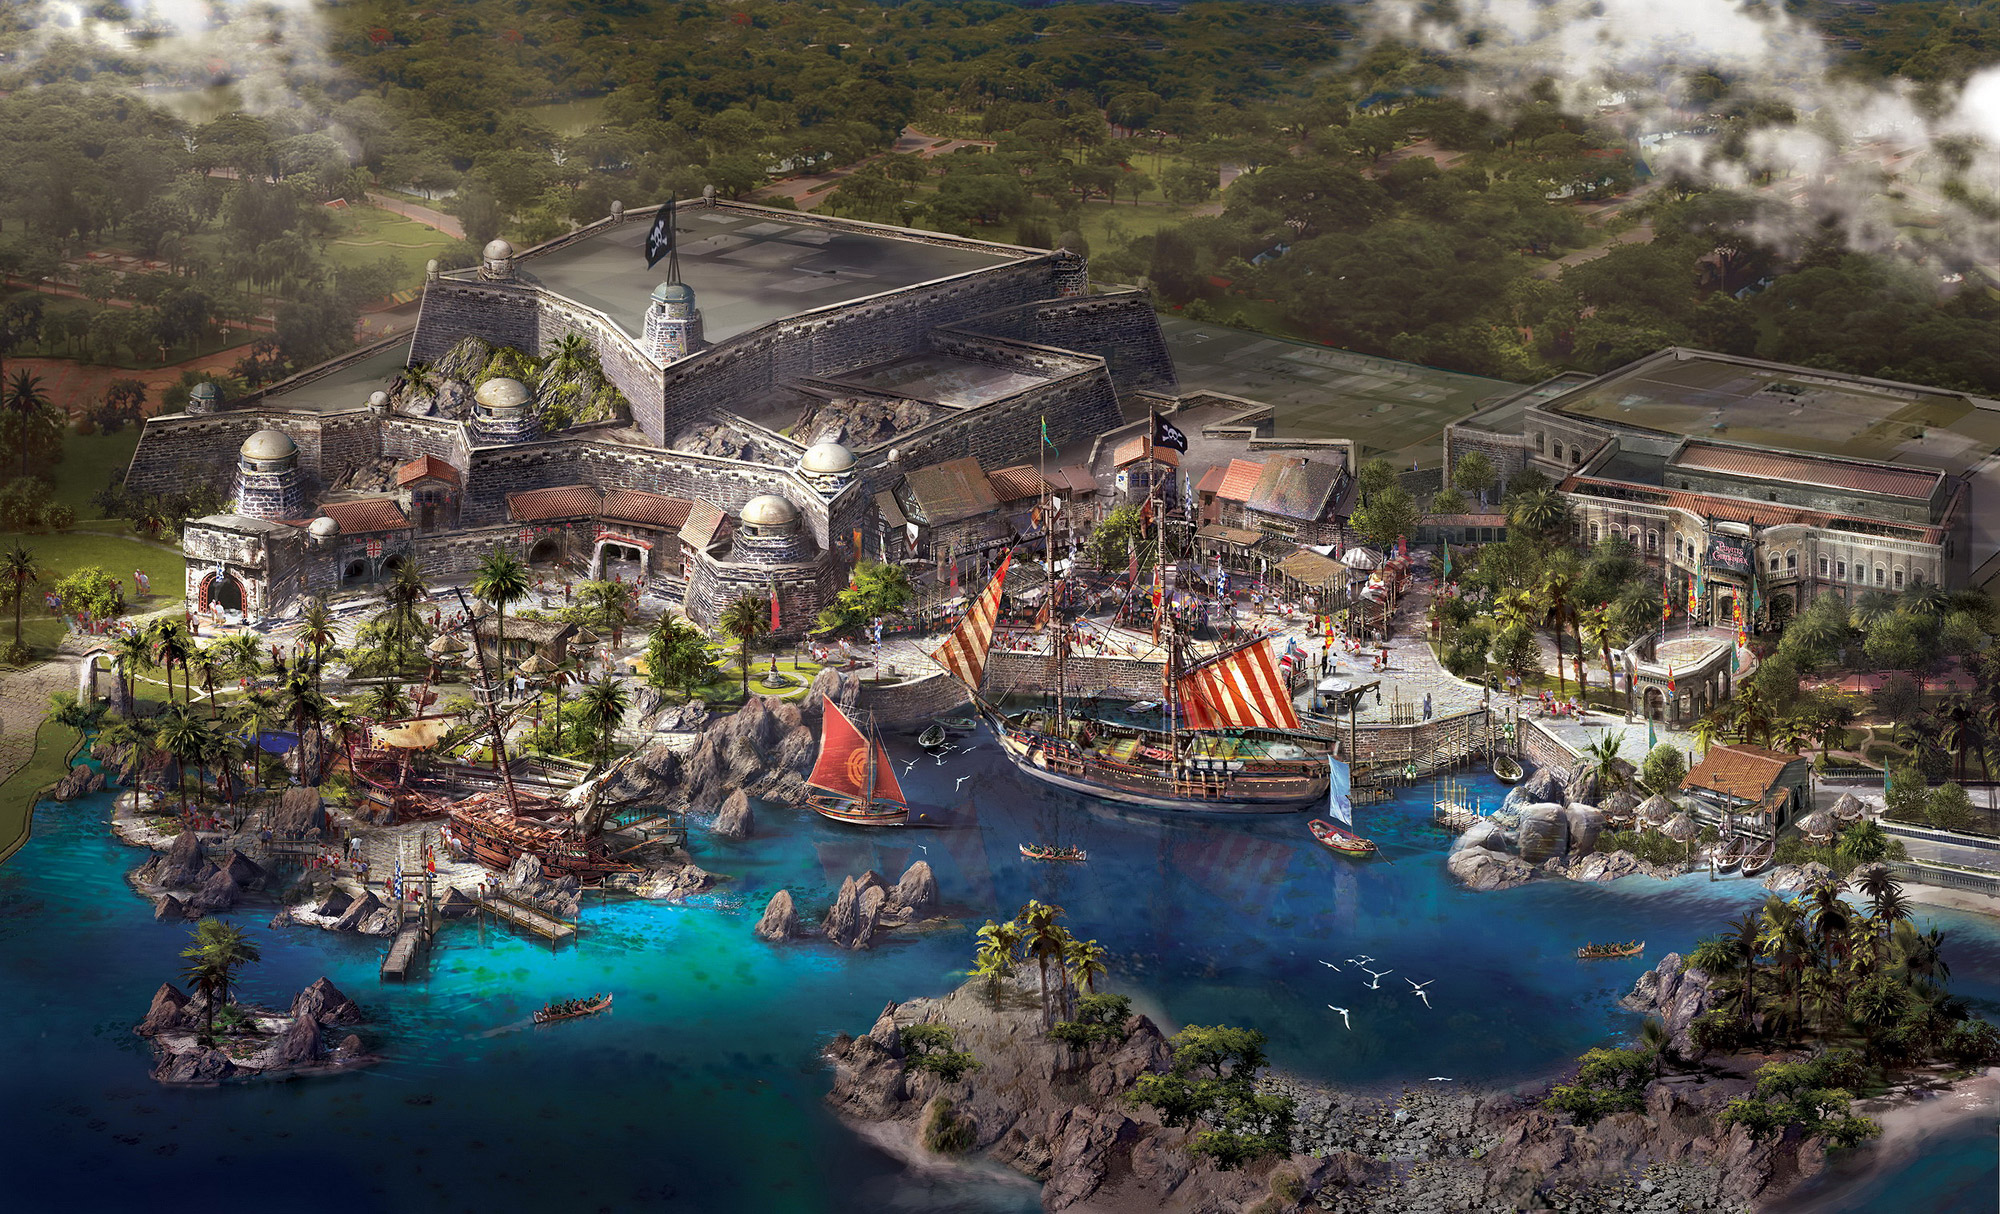 Shanghai Disneyland unveils Pirates of the Caribbean movies Themed Land